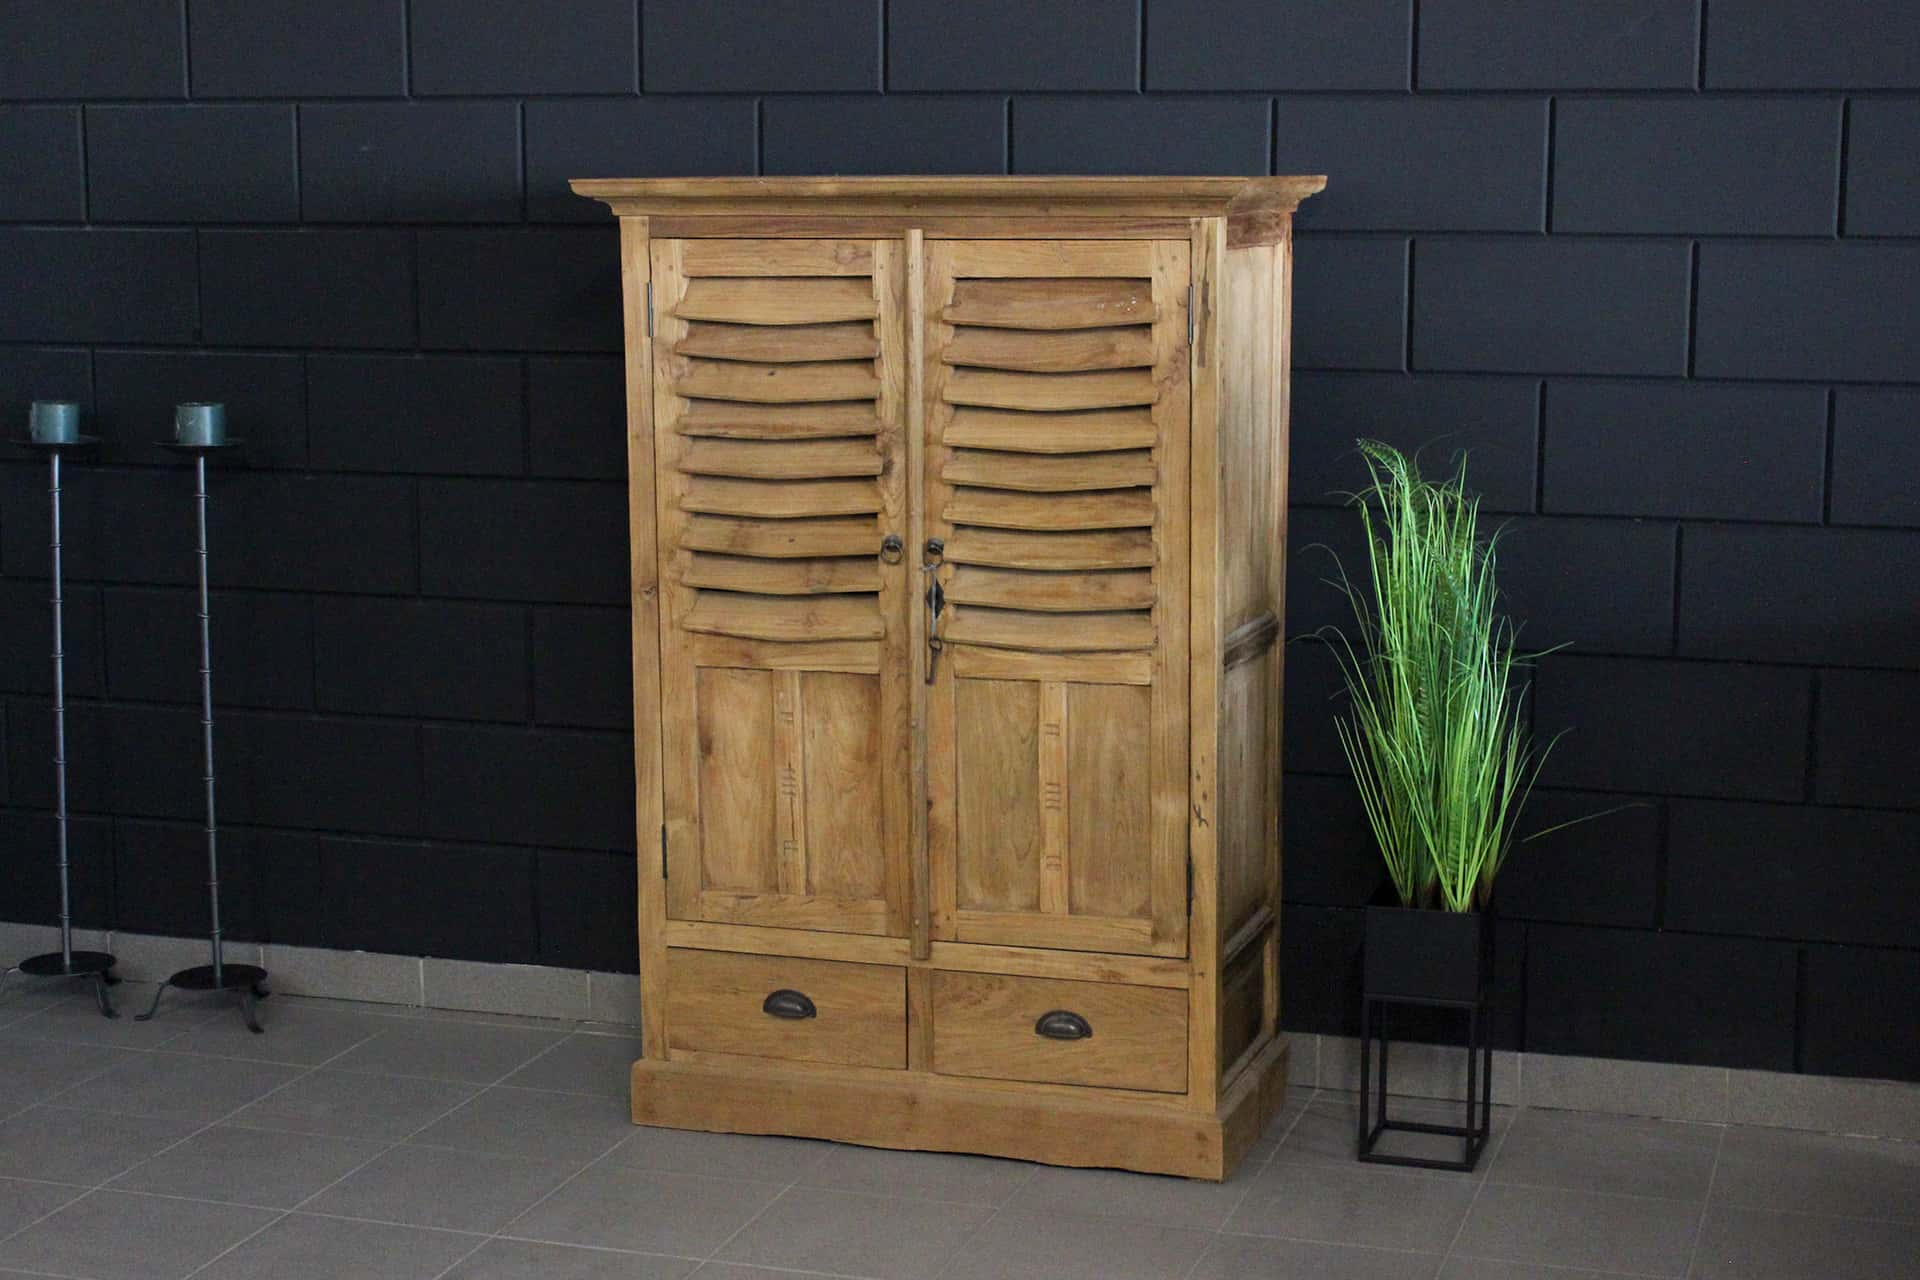 Cuci Kerai 90I Old | narrow teak wall cabinet with 2 louvre doors and drawers from Indonesia. Small teak cabinet - furniture store TEAK2.